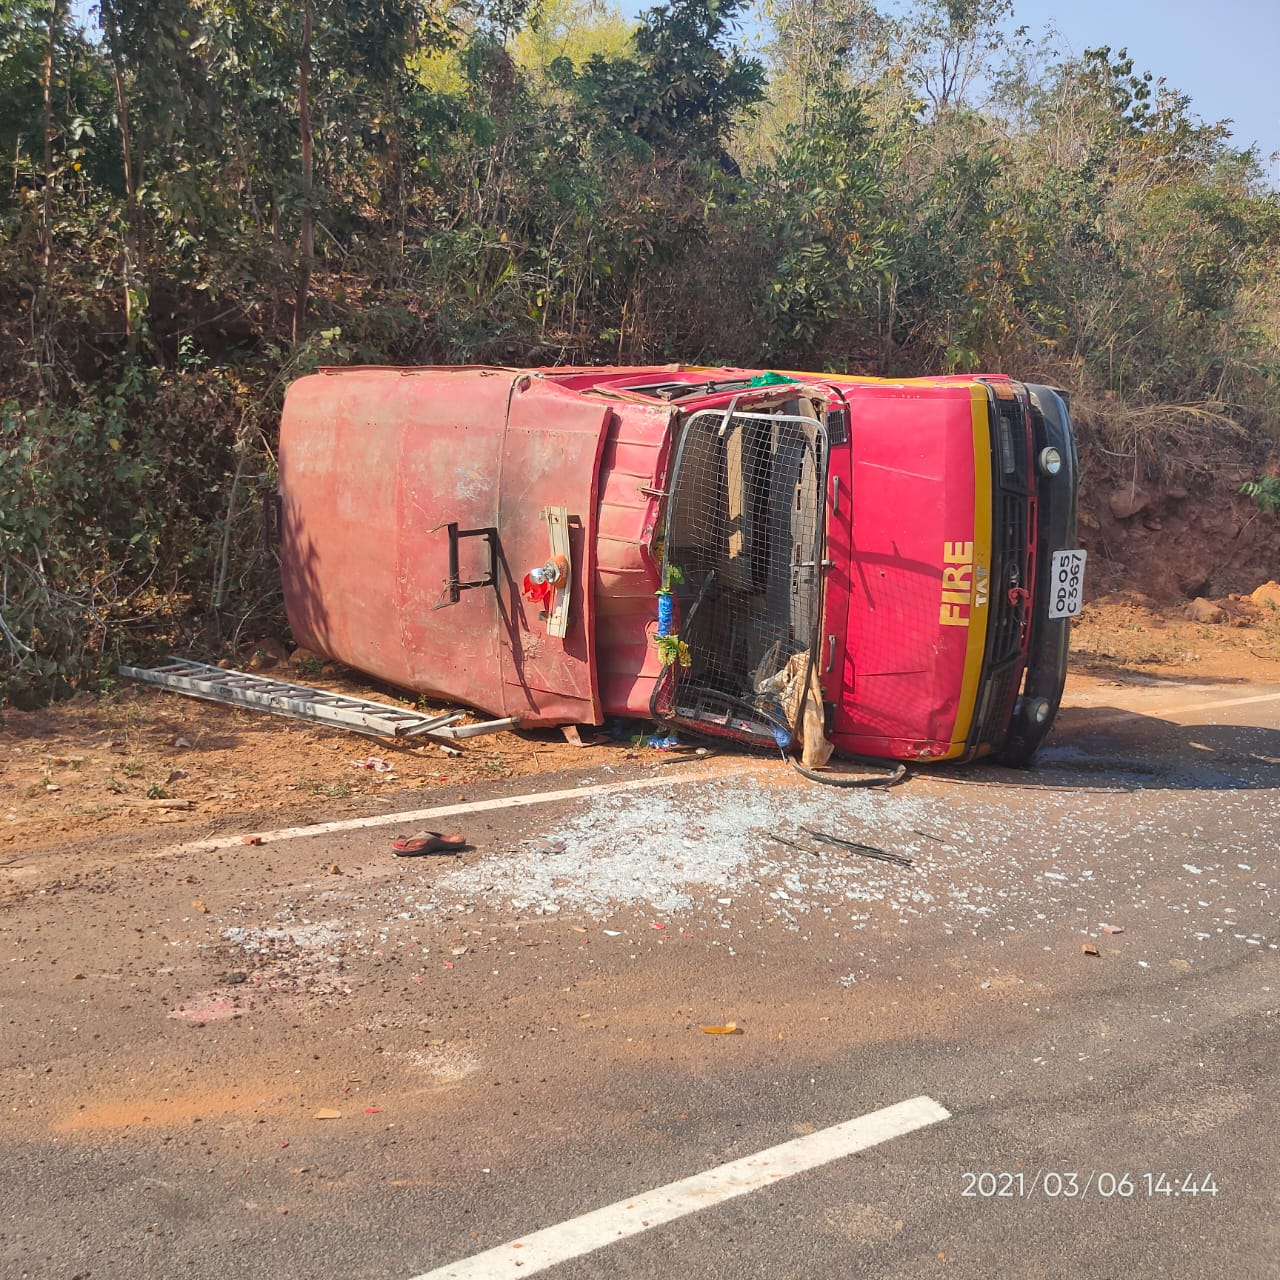 Fire Brigade van overturns in Malkangiri; 4 hurt, 1 critical